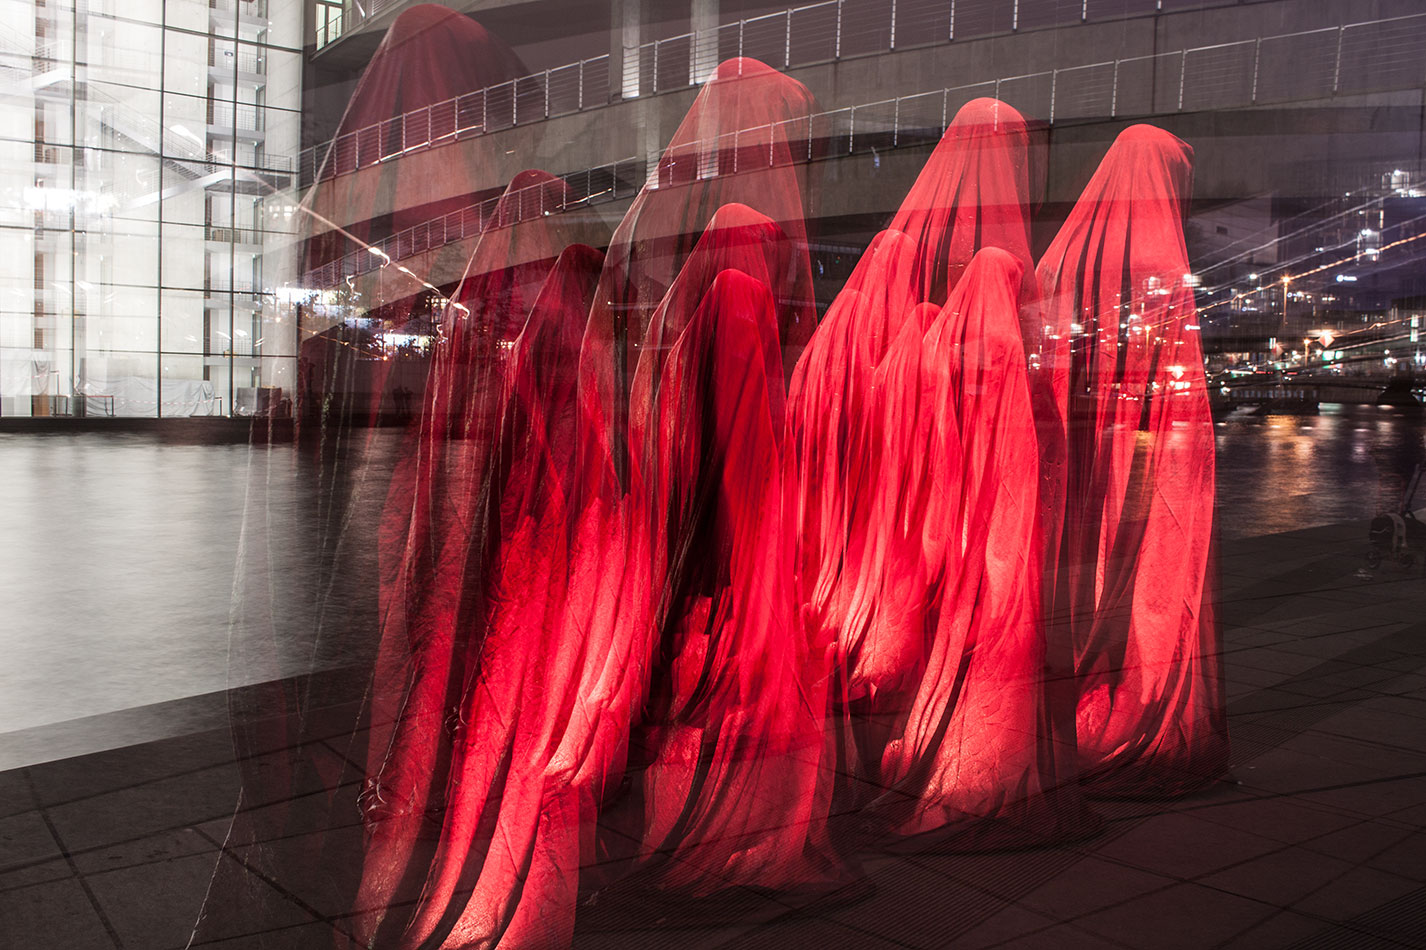 25-years-wallfall-berlin-germany-contemporary-fine-art-show-arts-design-sculpture-public-arts-arte-antique-guardians-of-time-manfred-kili-kielnhofer-4705